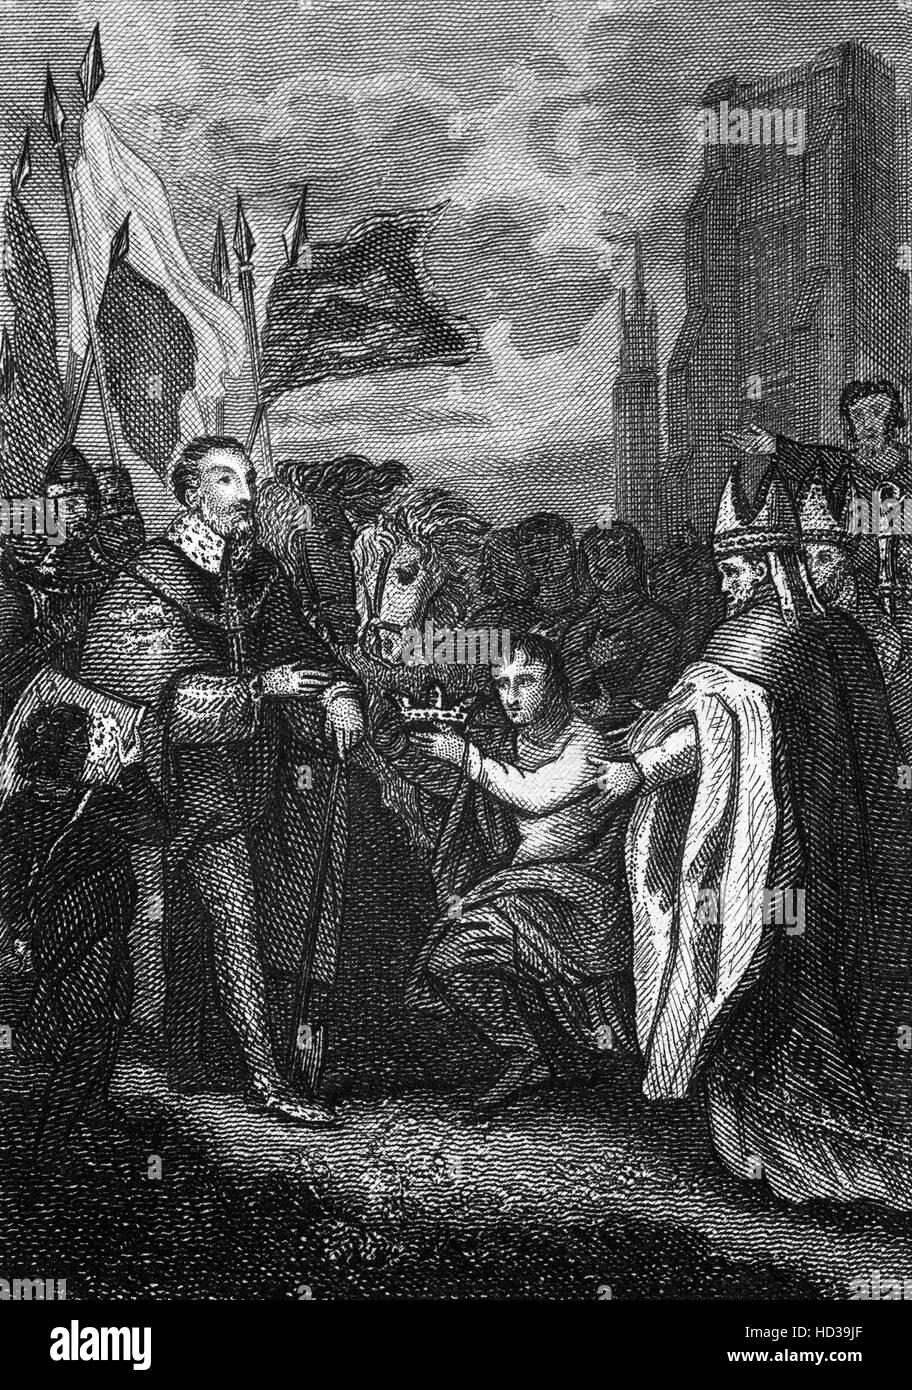 William the Conquer's coronation took place in Westminster Abbey on Christmas Day 1066. - Stock Image